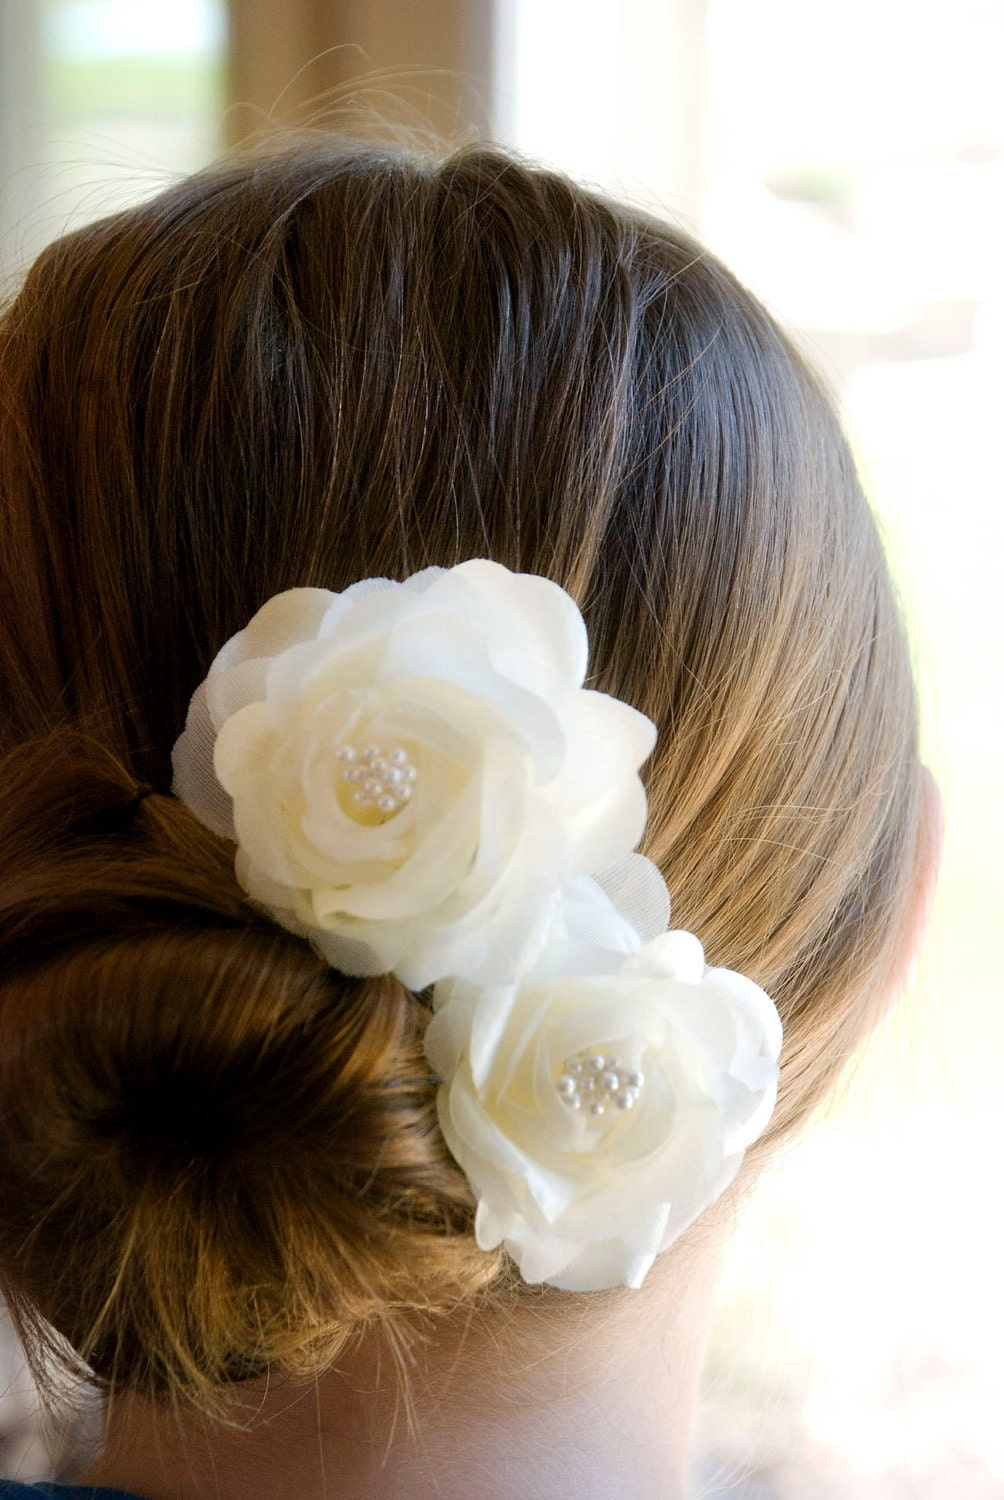 Flower hair clips Pretty and feminine, flower hair clips can be fun or subtle. Some hair clips feature bright, bold colors that stand out, while others are decorated with natural-looking flowers .